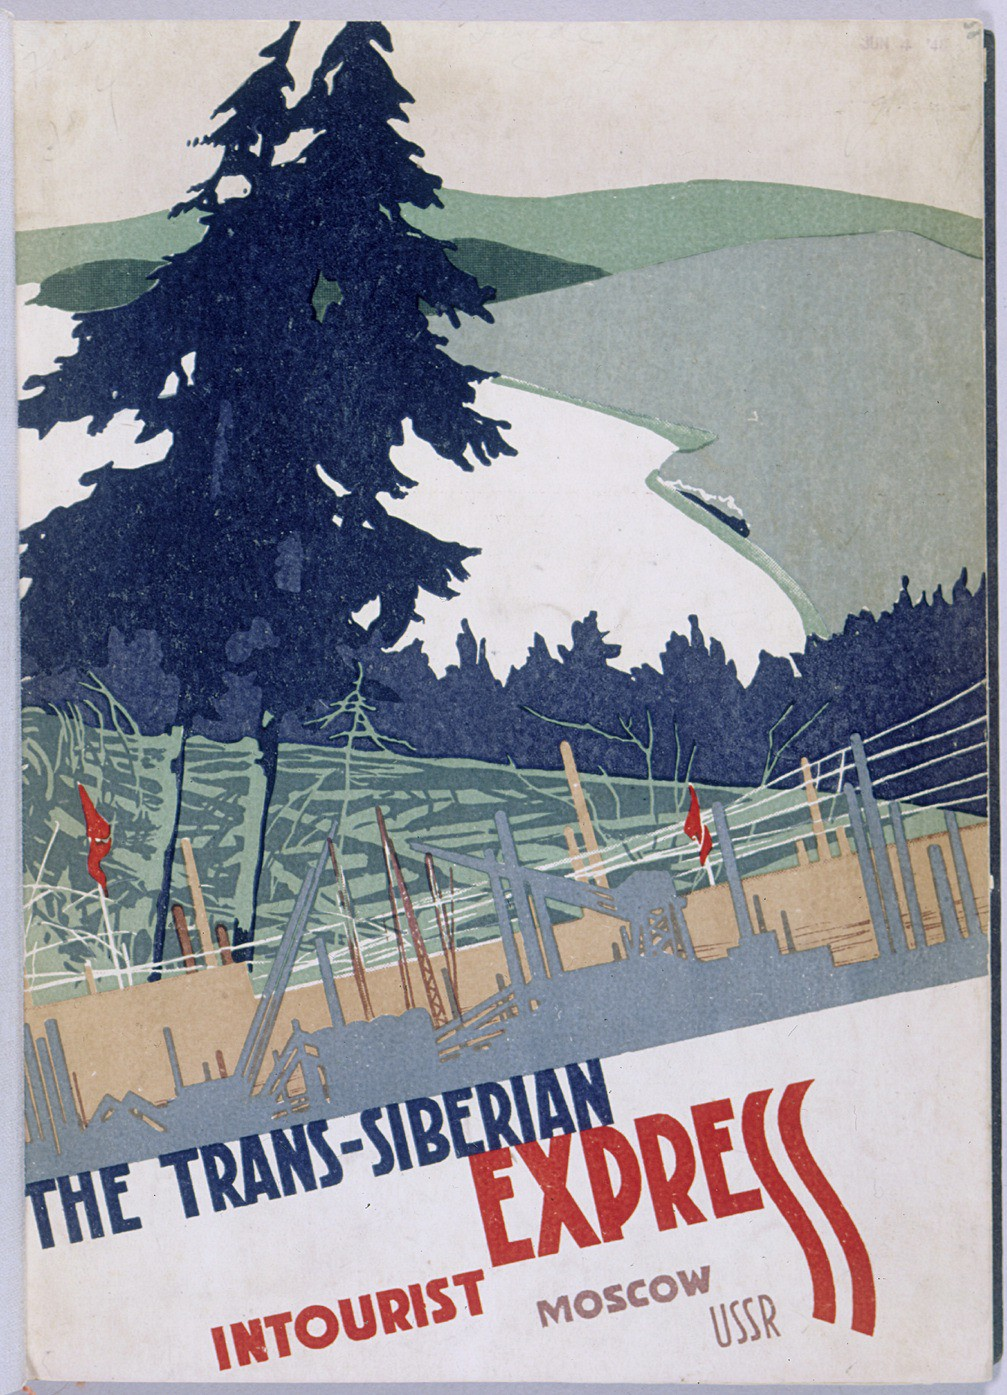 <p>Front cover of a brochure from the Soviet travel agency Intourist, describing the amenities of the Trans-Siberian Express. Despite their anxieties, most of the Jewish refugees traveling on the train felt like tourists. [From the USHMM special exhibition Flight and Rescue.]</p>